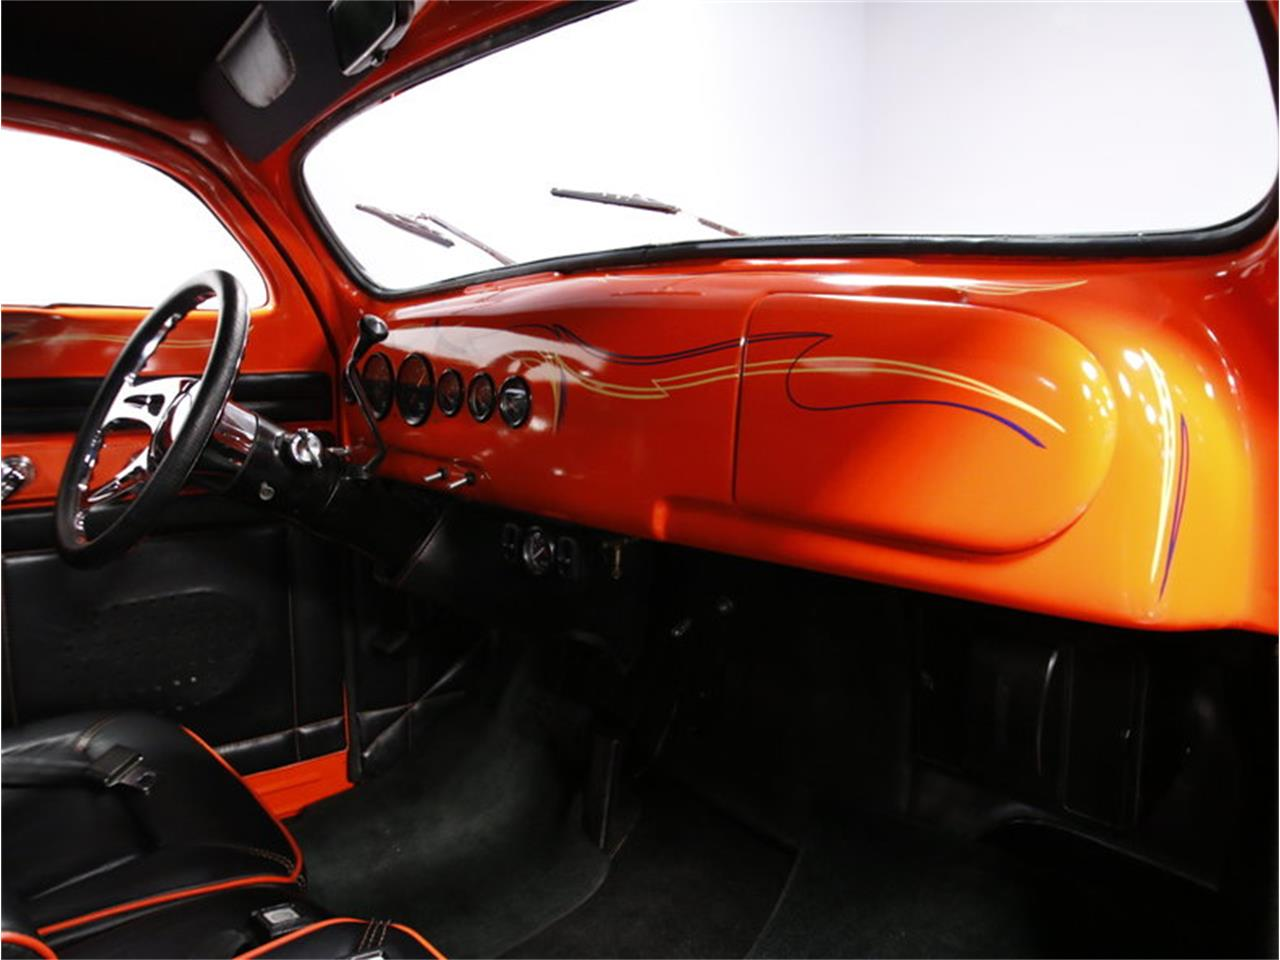 Large Picture of '48 Ford F1 located in Concord North Carolina Offered by Streetside Classics - Charlotte - L536